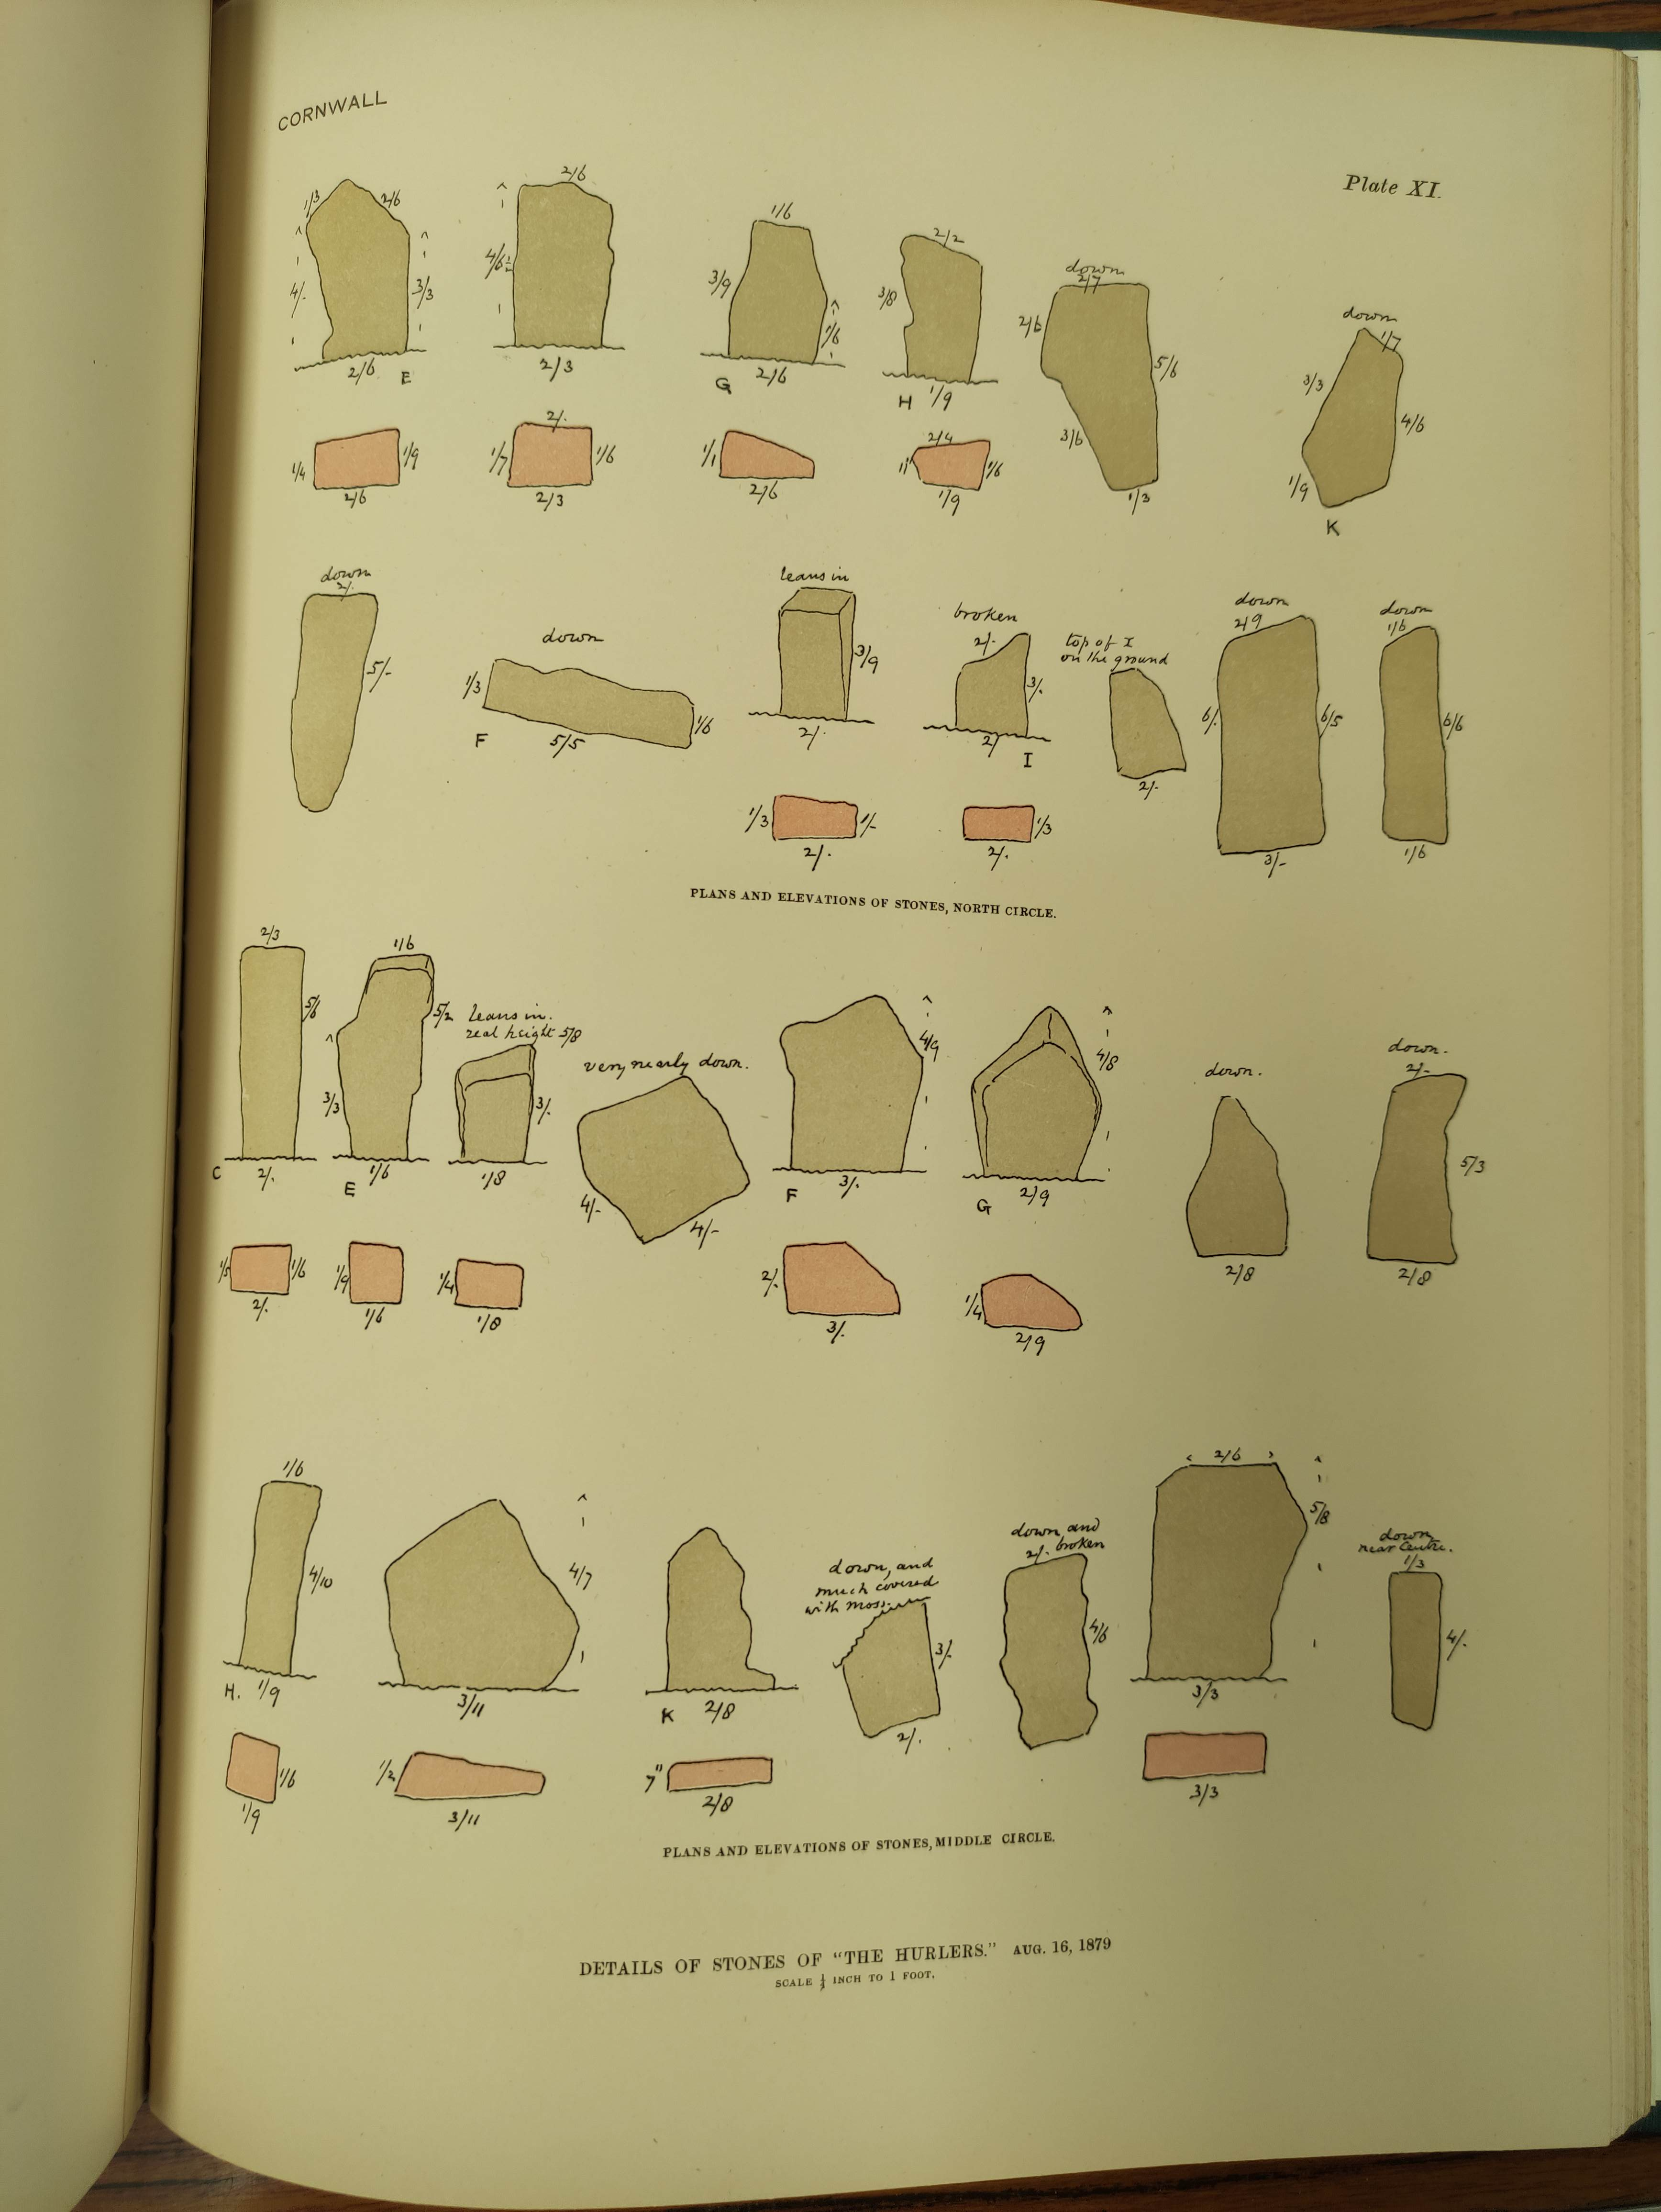 LUKIS WILLIAM C.The Prehistoric Stone Monuments of the British Isles, vol. re Cornwall. Col. - Image 6 of 7